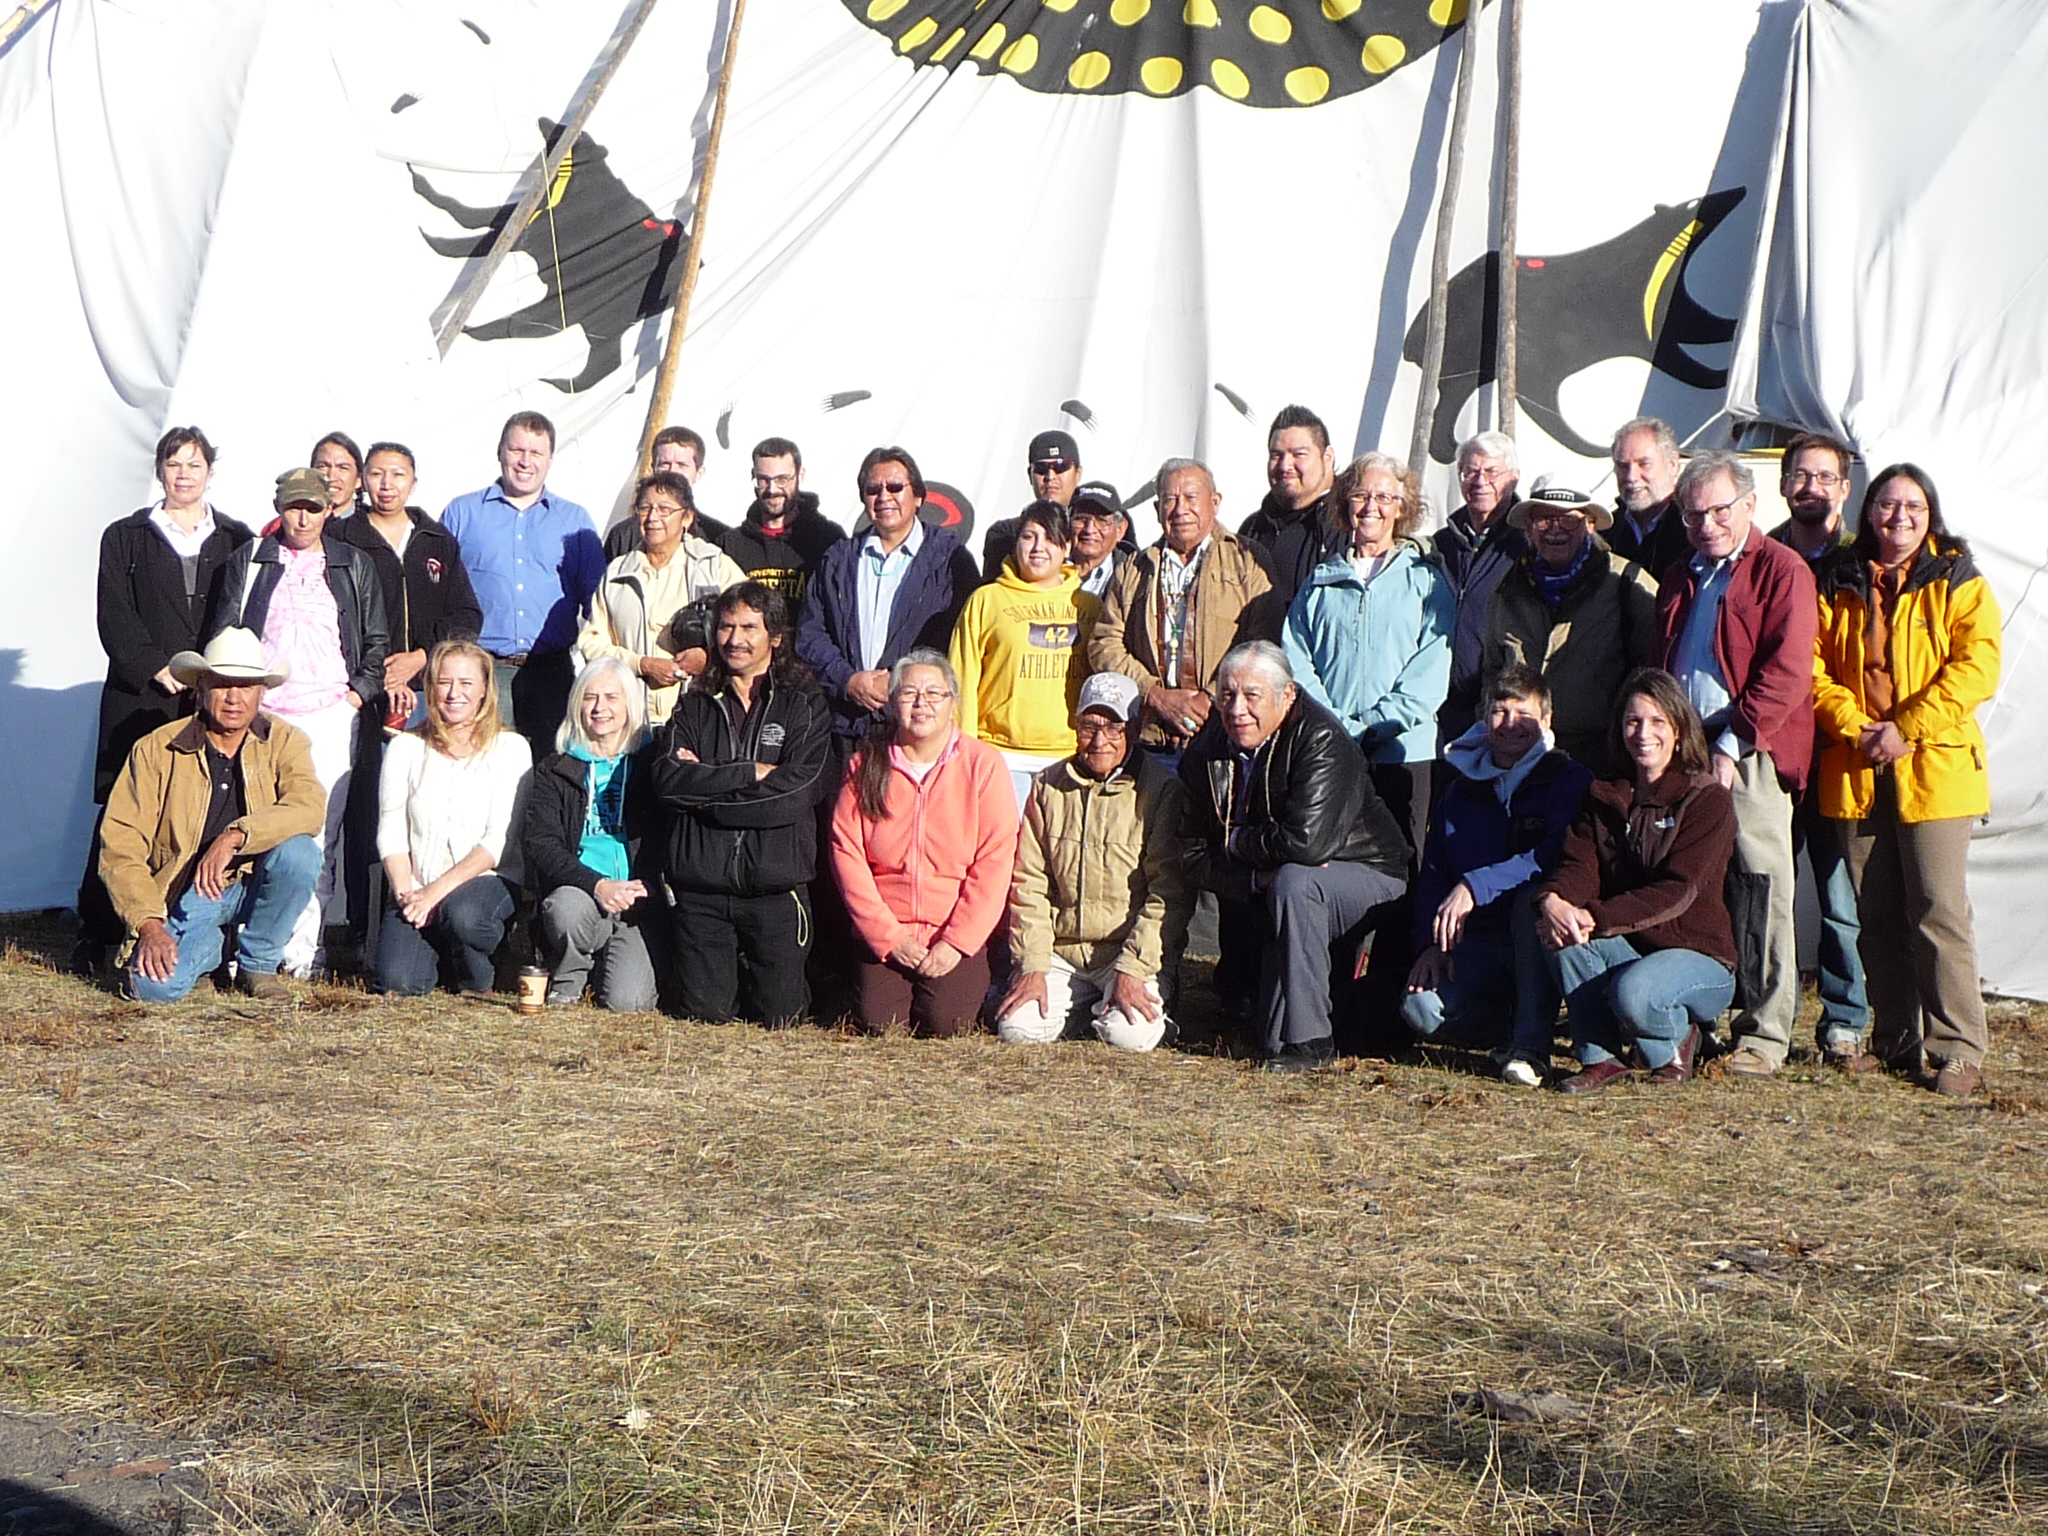 Group photo from 2009 Dene Migration Workshop at the Tsuut'ina Nation